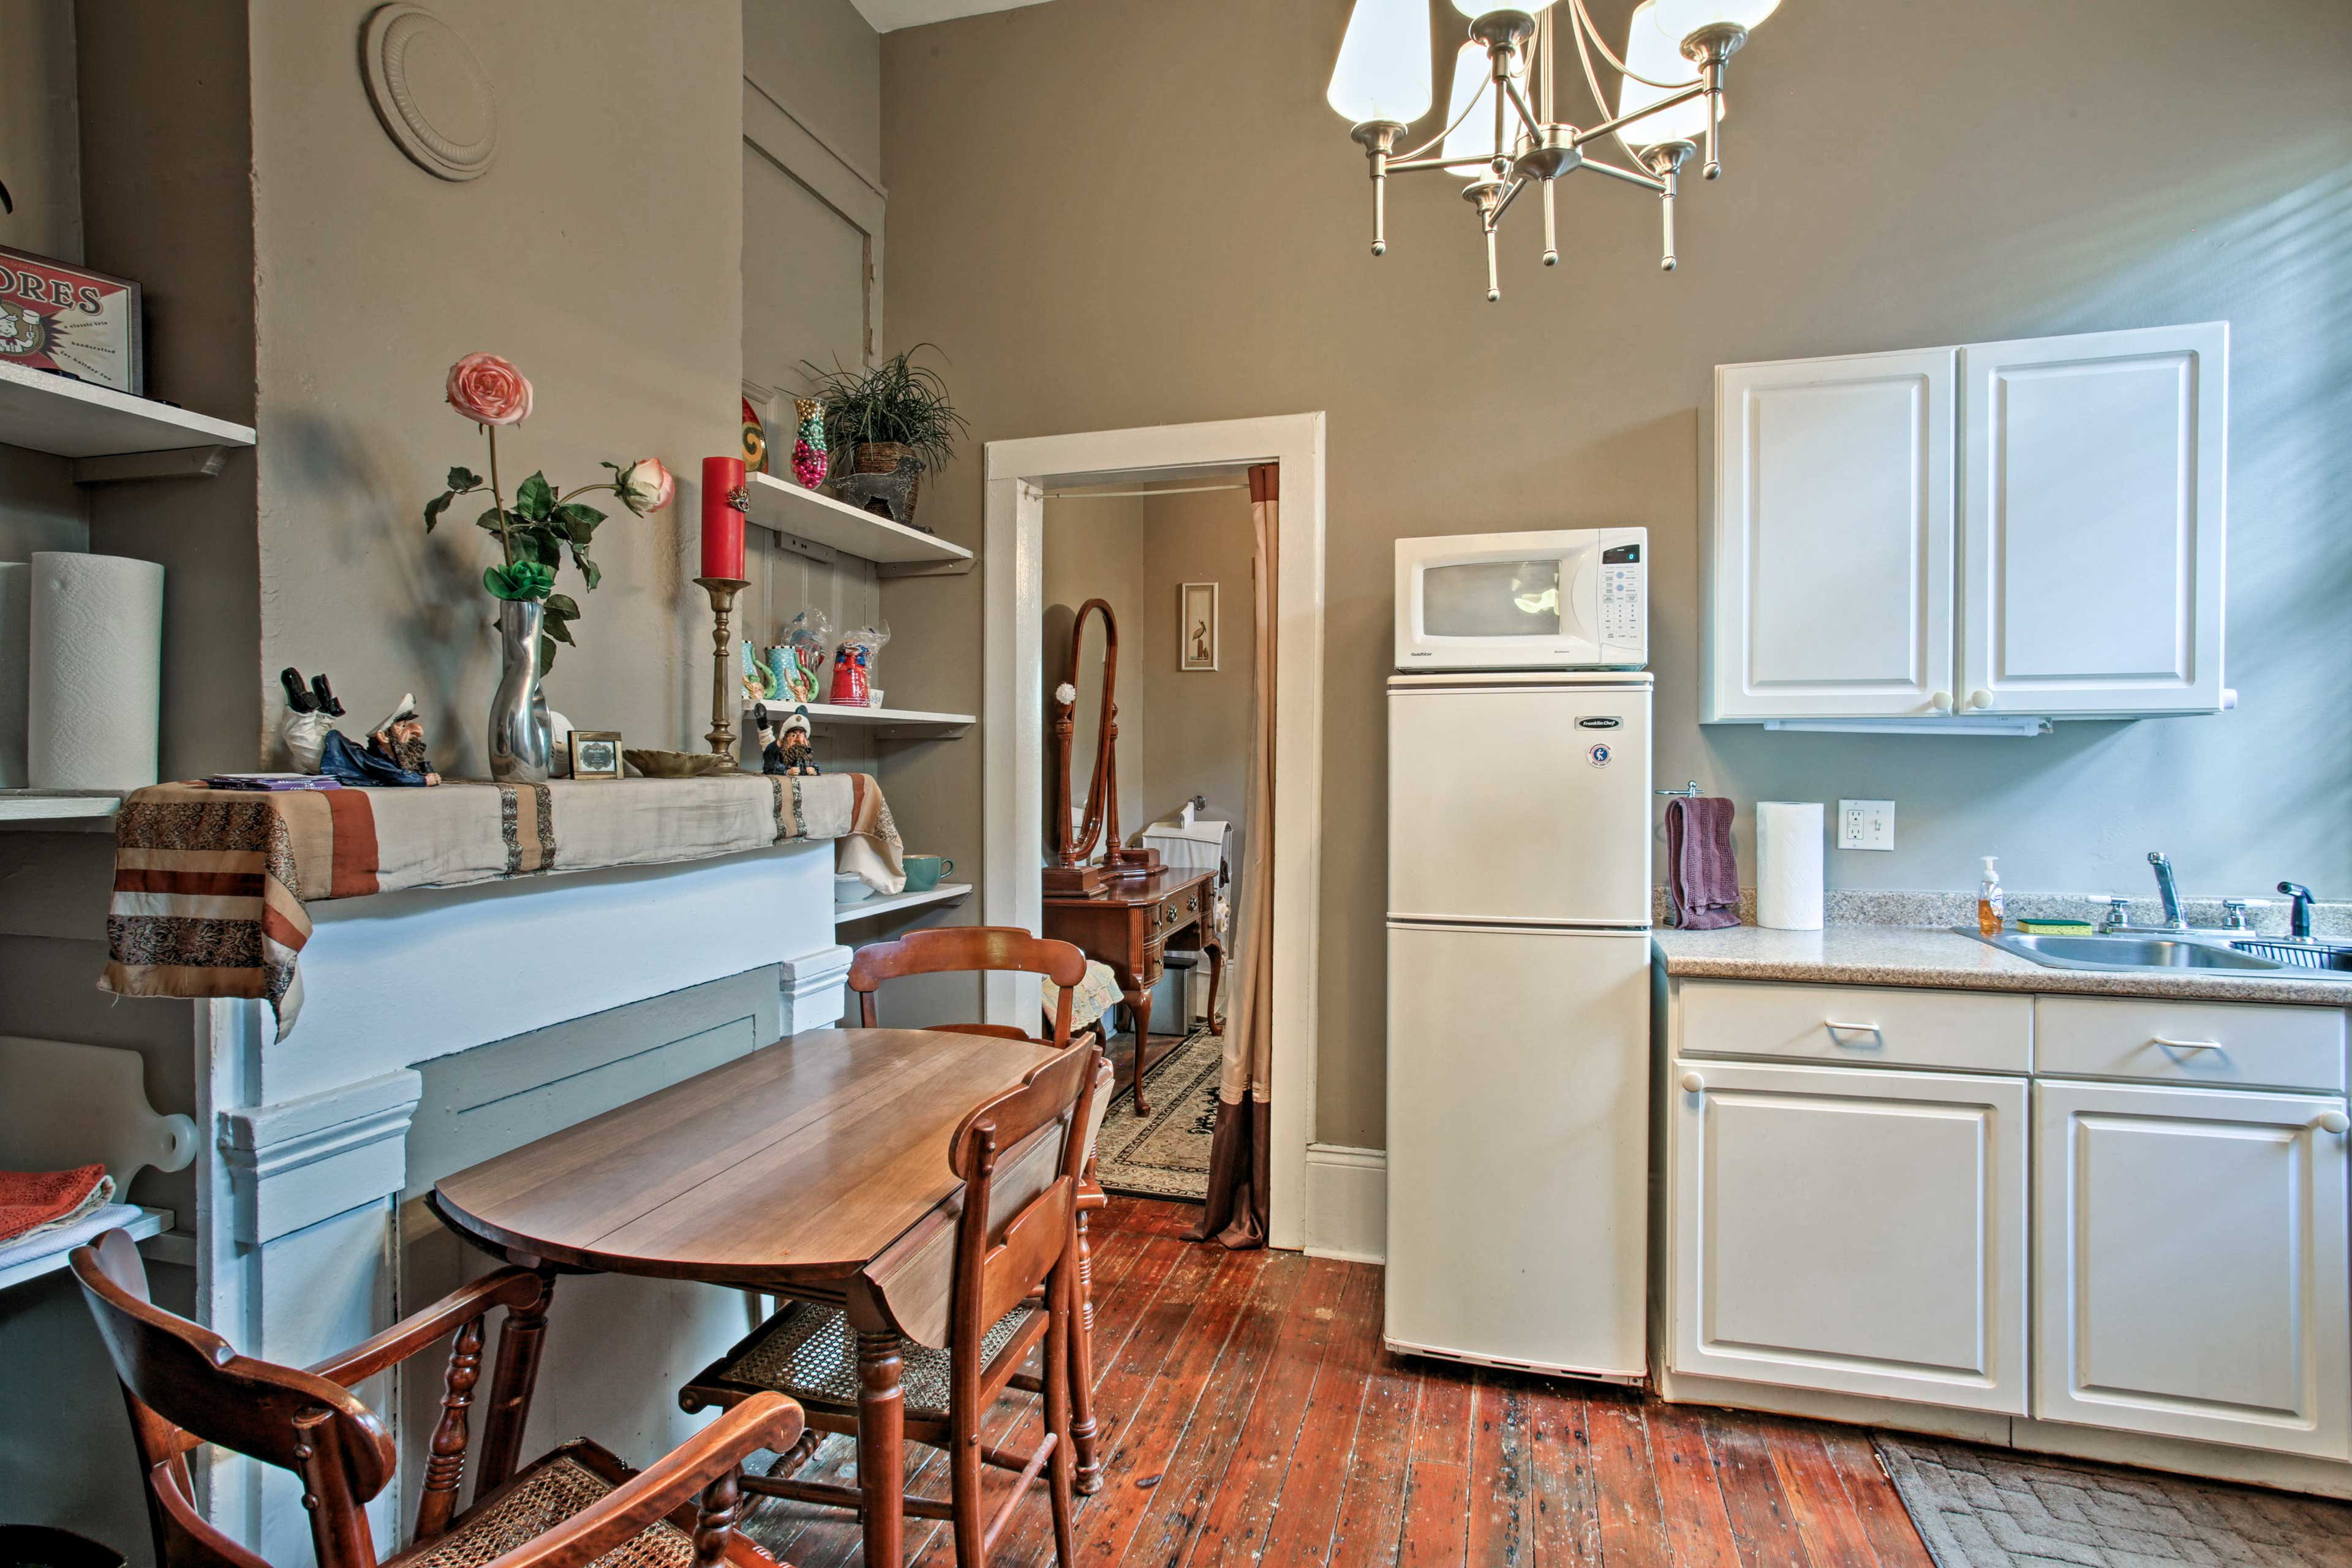 A 2-person table sits right off the well-equipped kitchen.